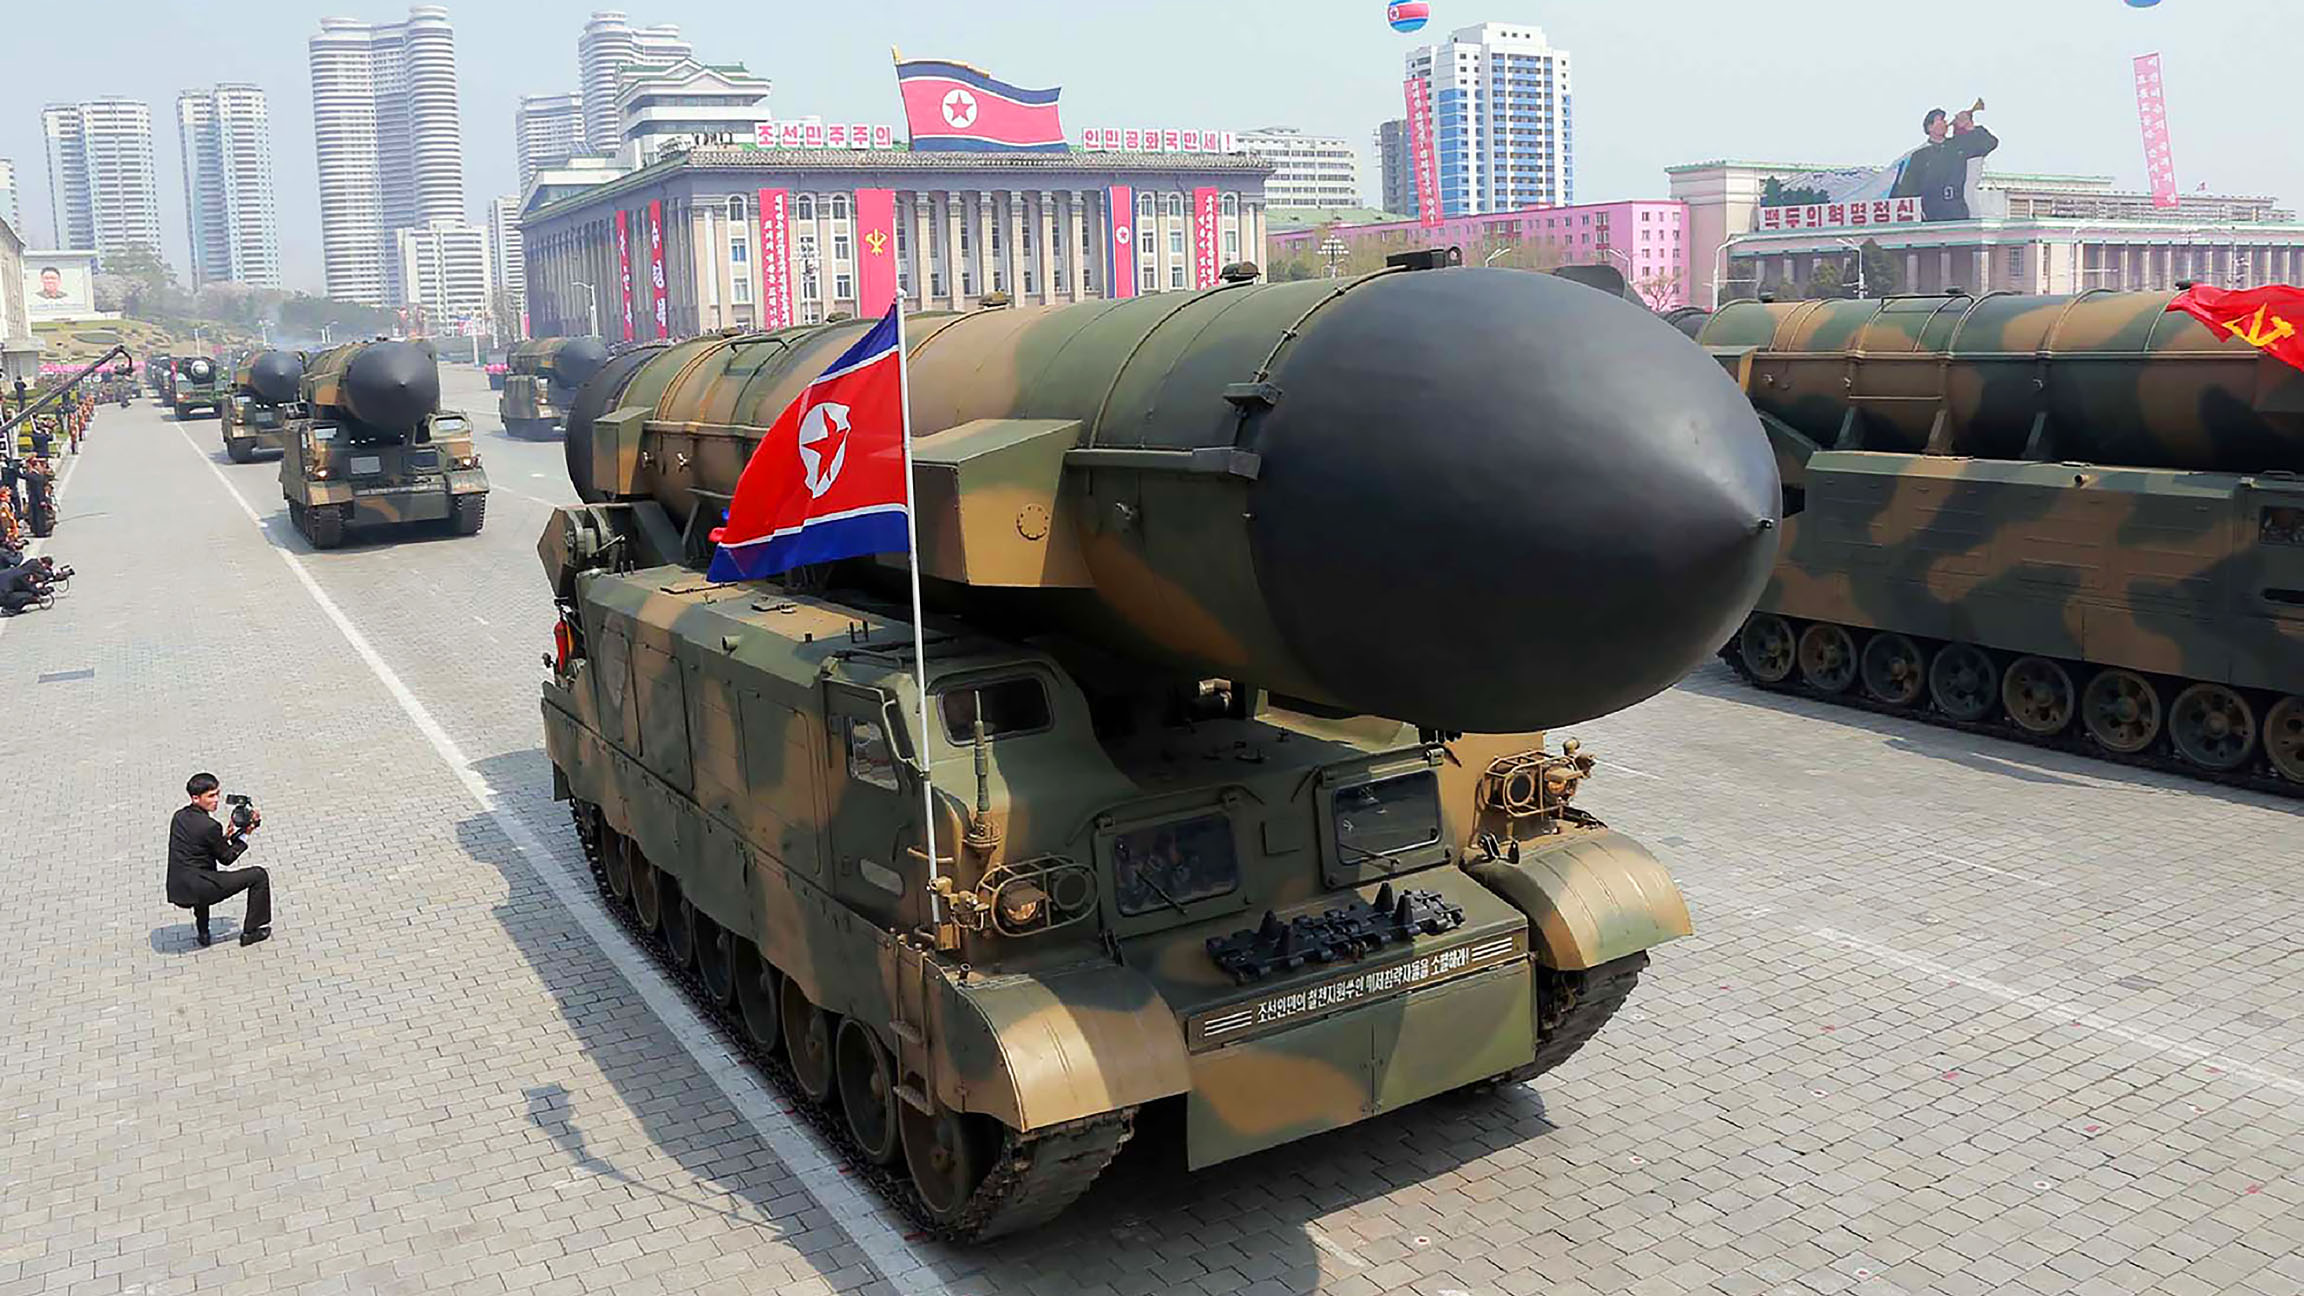 This April 15, 2017 picture released from North Korea's official Korean Central News Agency (KCNA) on April 16, 2017 shows Korean People's ballistic missiles being displayed through Kim Il-Sung square during a military parade in Pyongyang marking the 105th anniversary of the birth of late North Korean leader Kim Il-Sung. (AFP/Getty Images)